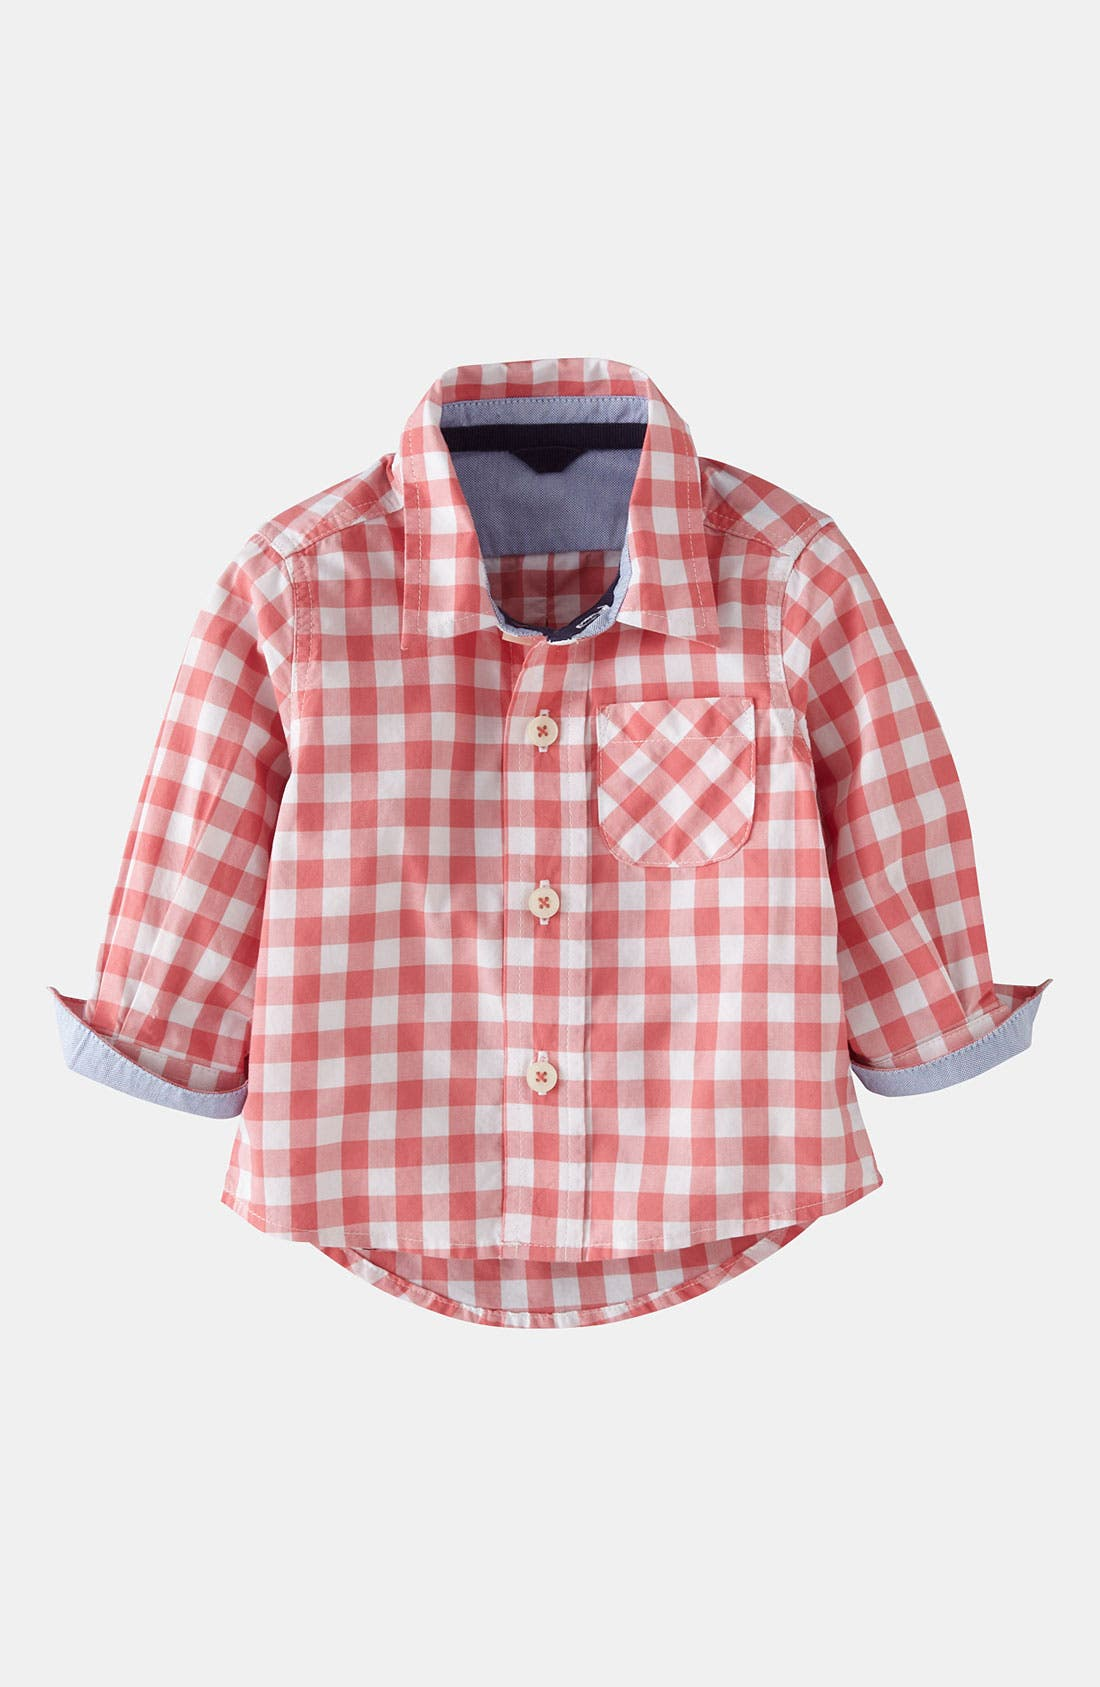 Alternate Image 1 Selected - Mini Boden 'Baby' Shirt (Baby)